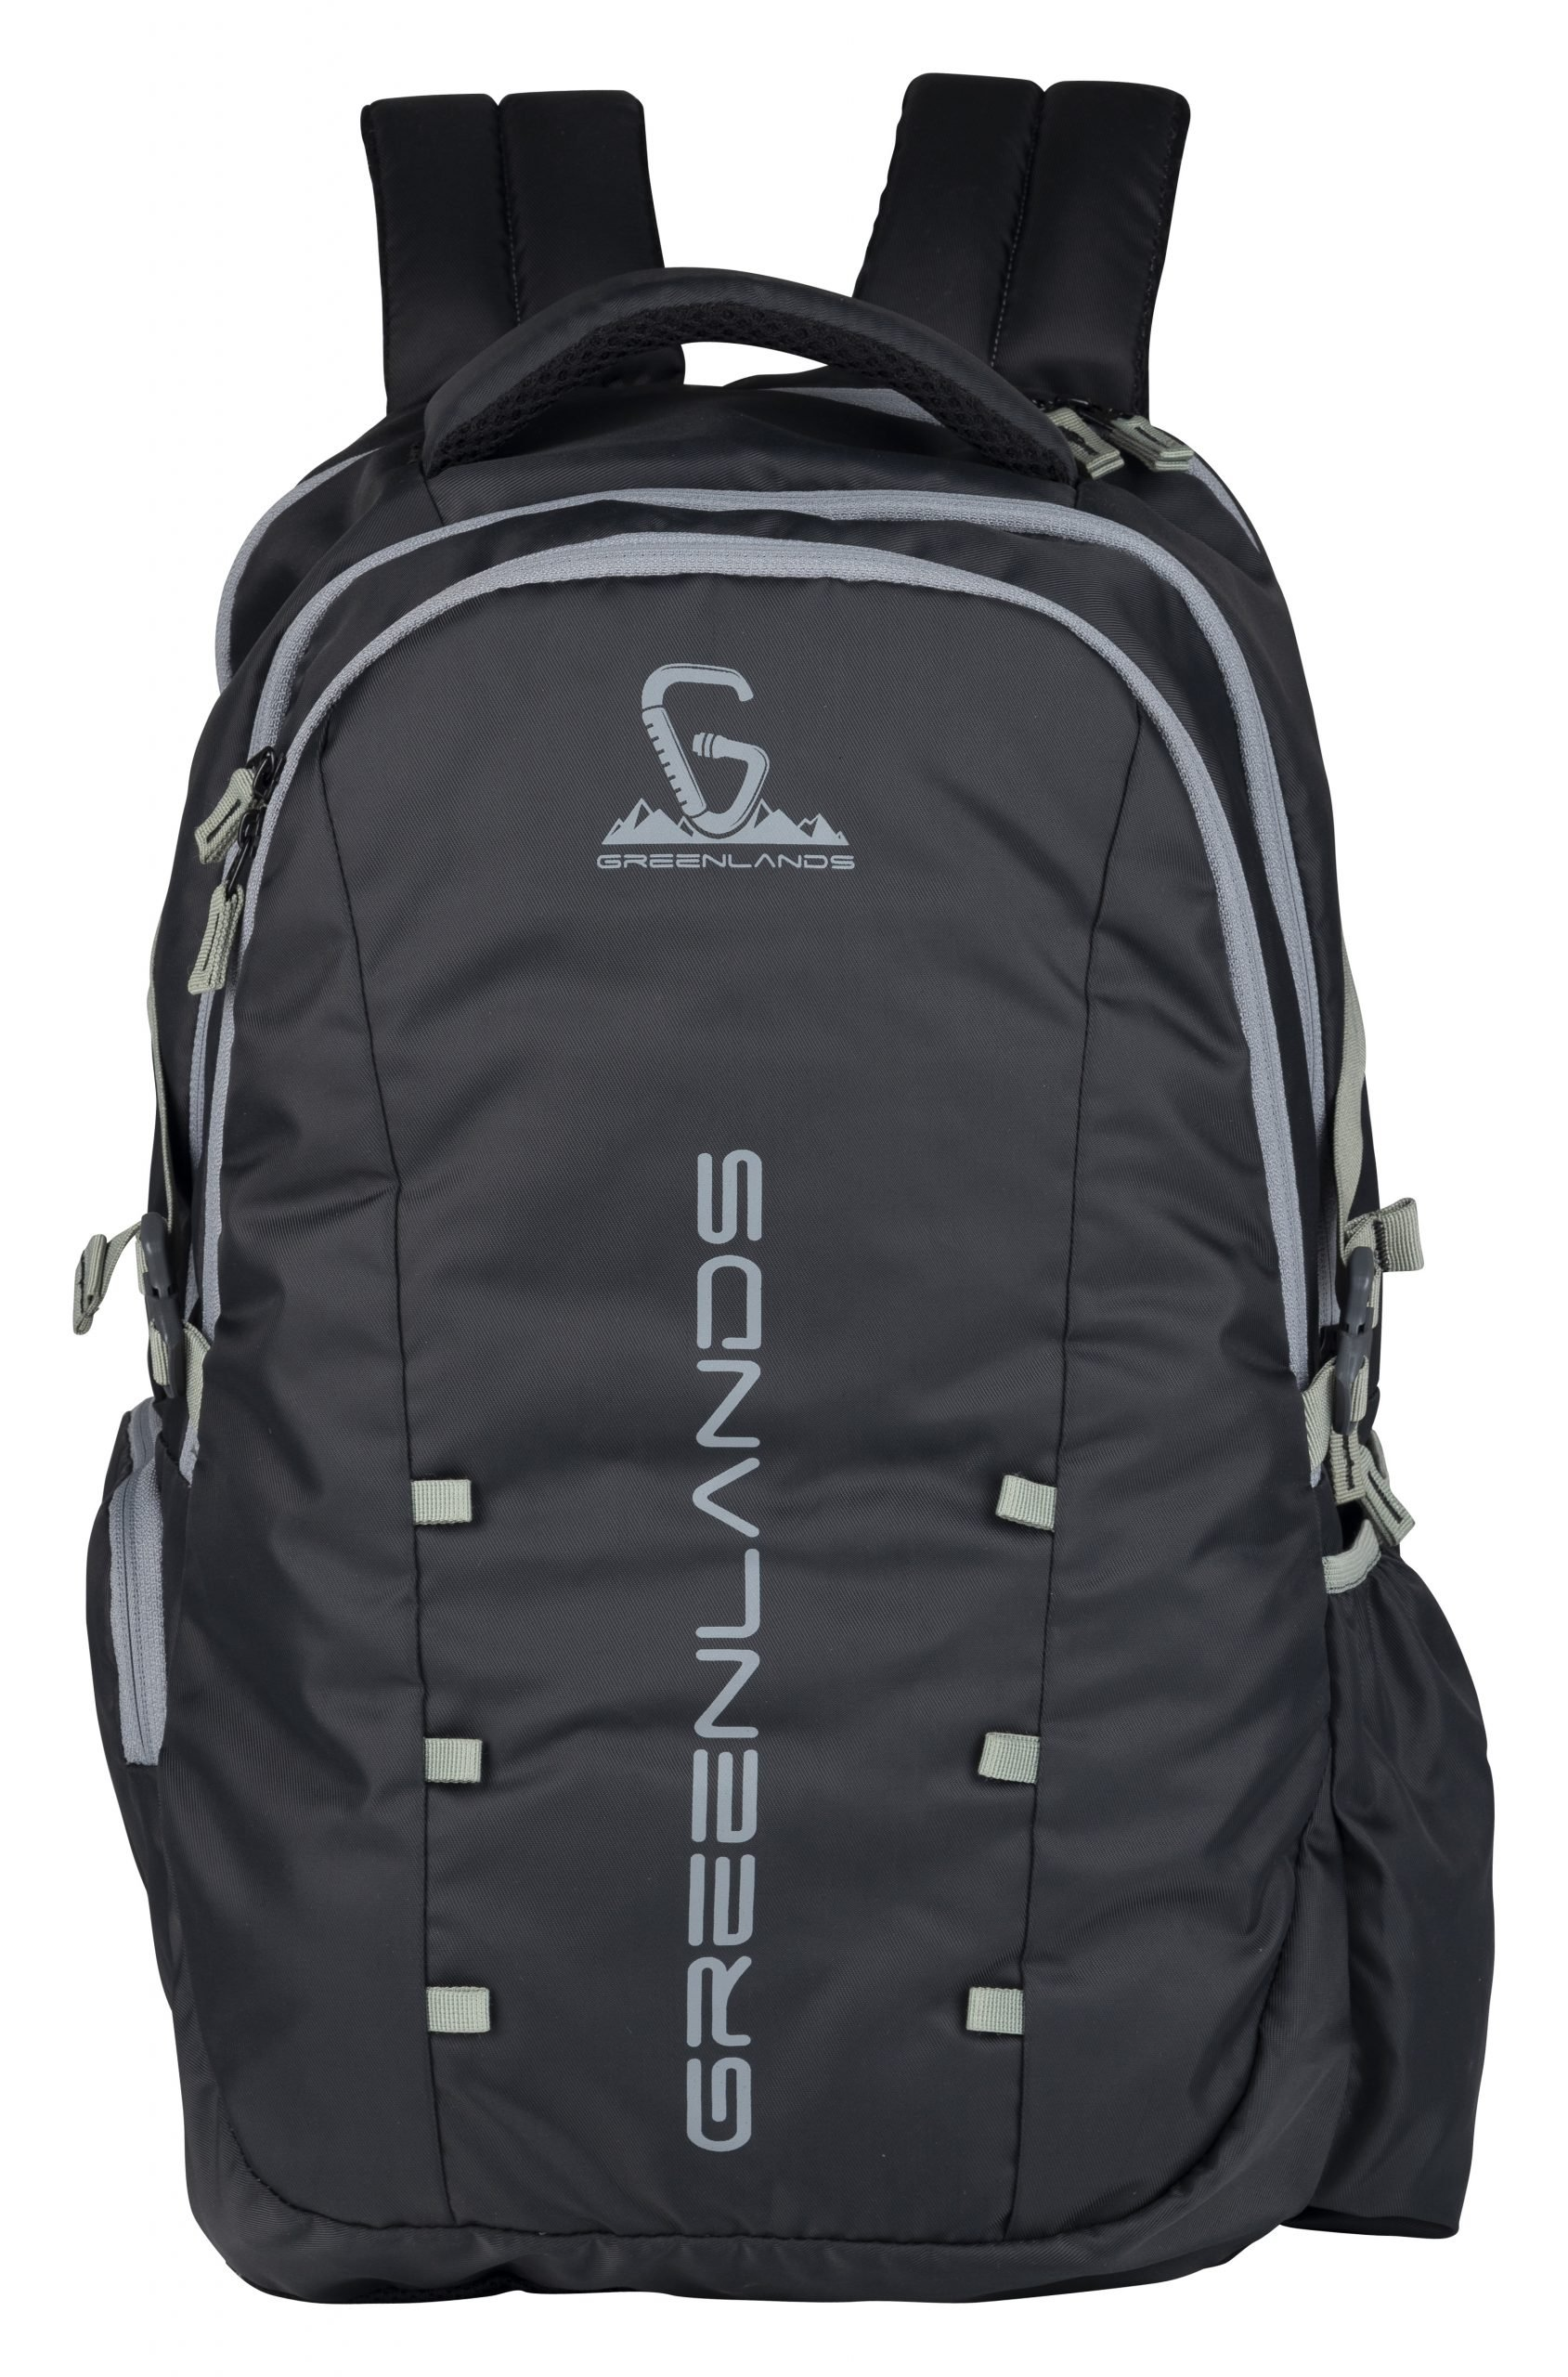 Greenlands QUAD (Dark Grey) Backpack